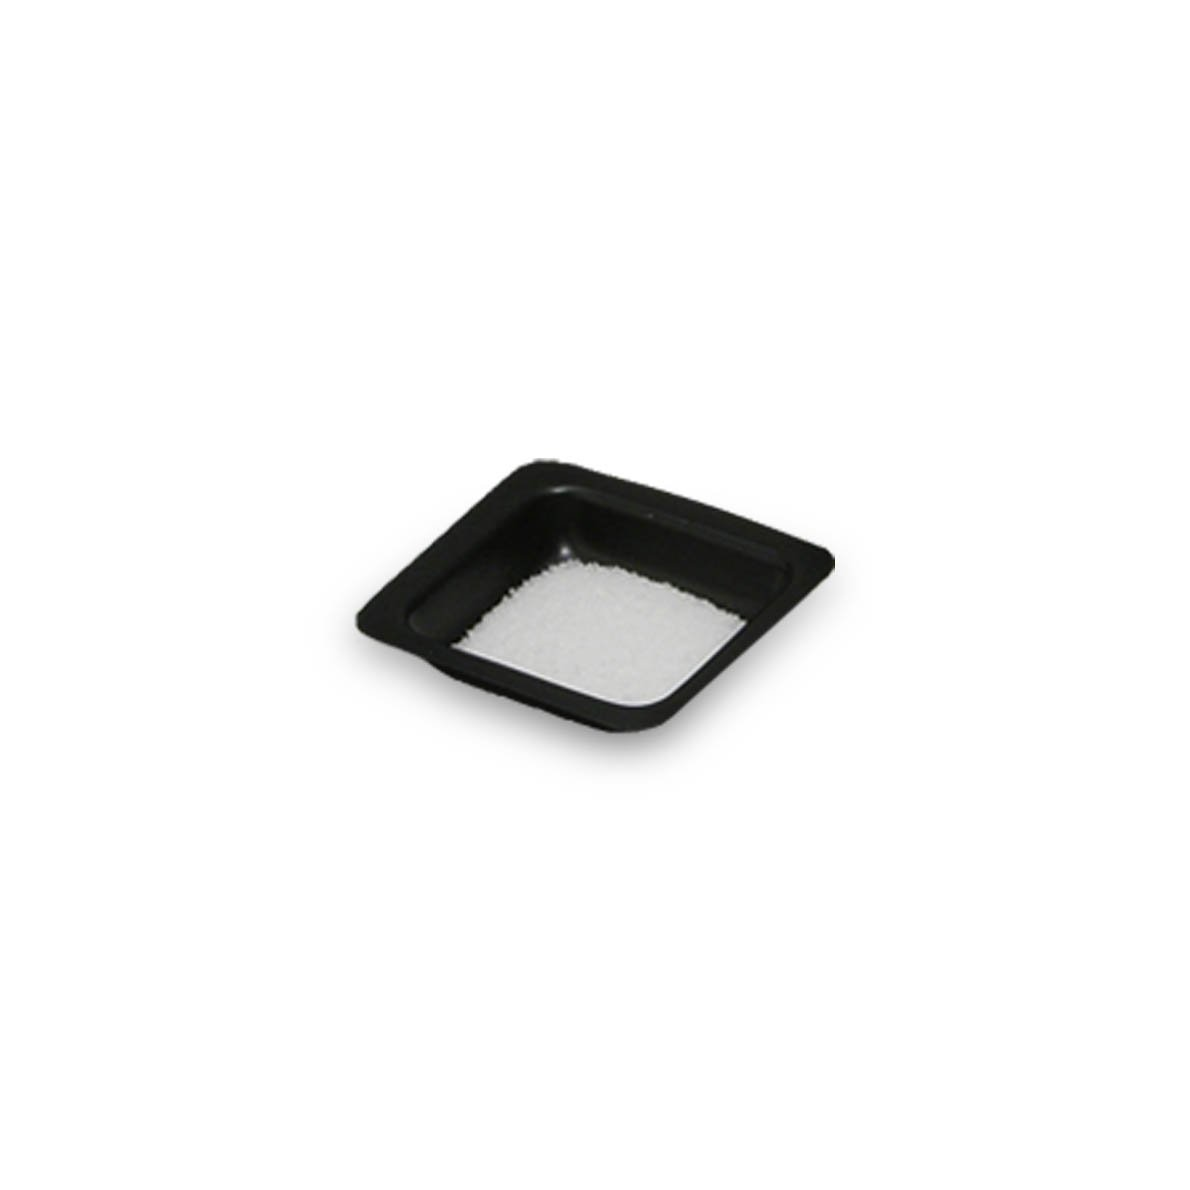 20mL Black Antistatic Polystyrene Square Weigh Boat (25 Packs/Case - 500/Pack)